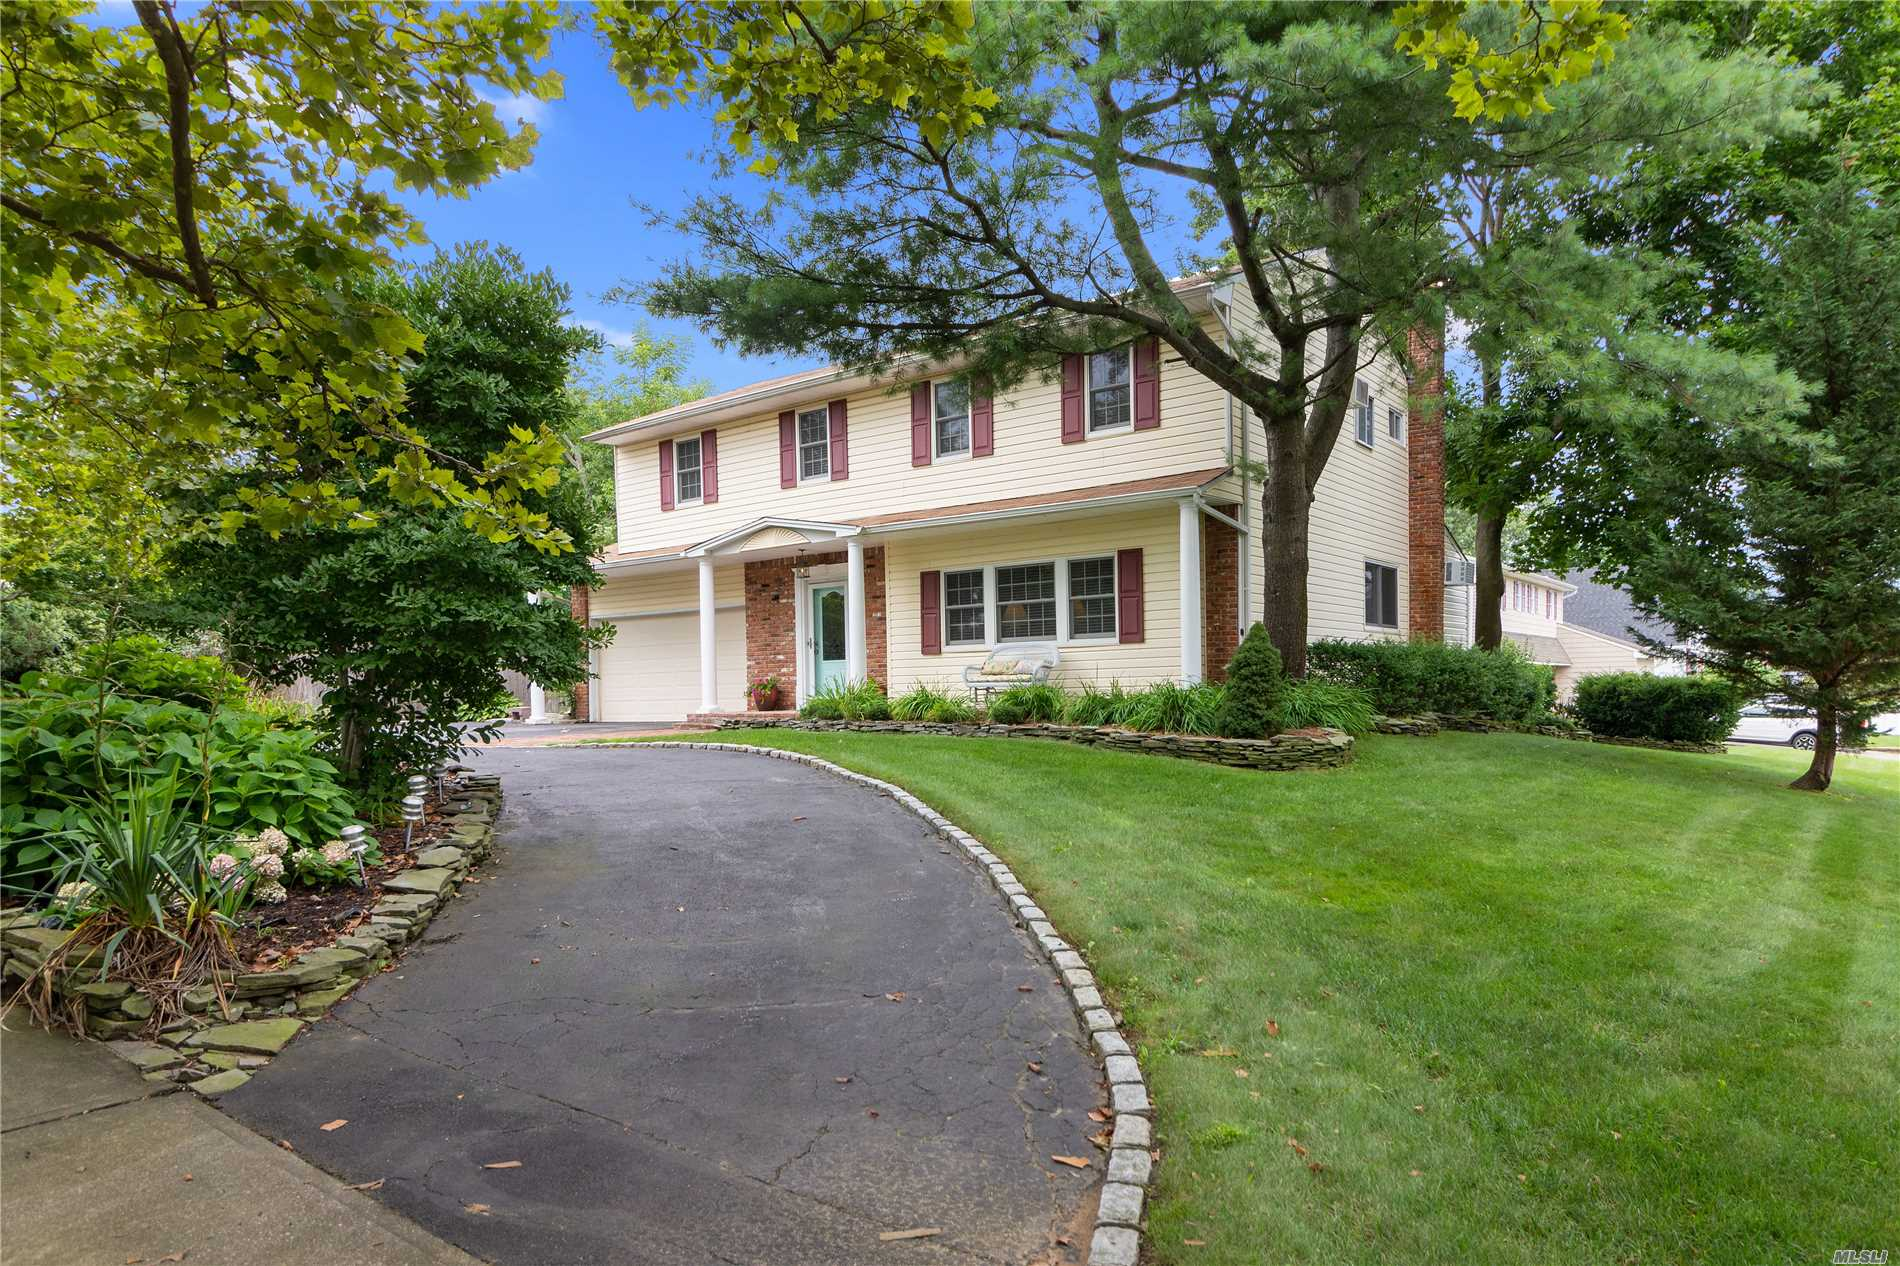 Photo of home for sale at 2 Bonnie Gate, Kings Park NY